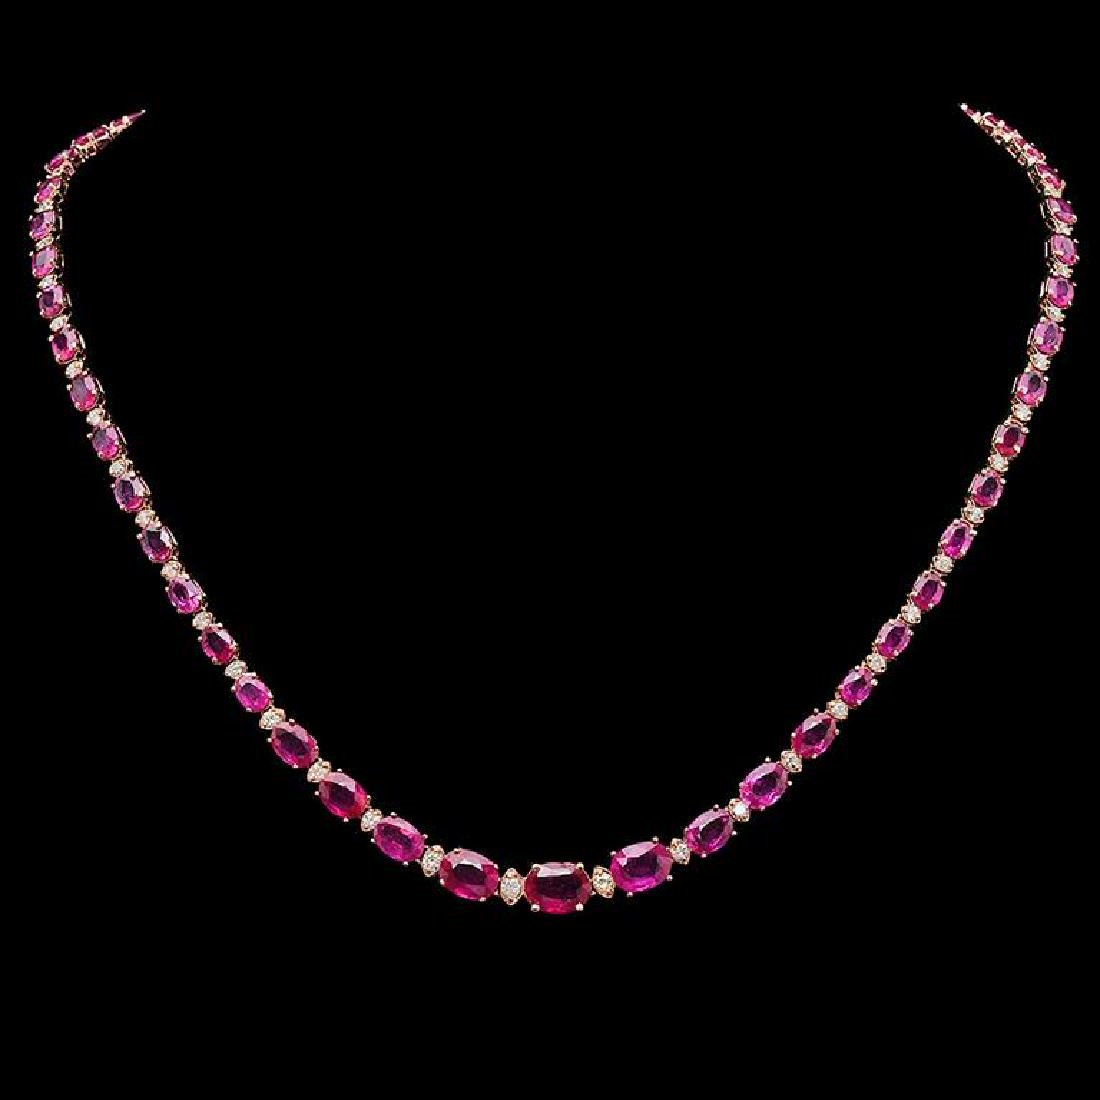 14K Gold 28.65ct Ruby & 1.65ct Diamond Necklace